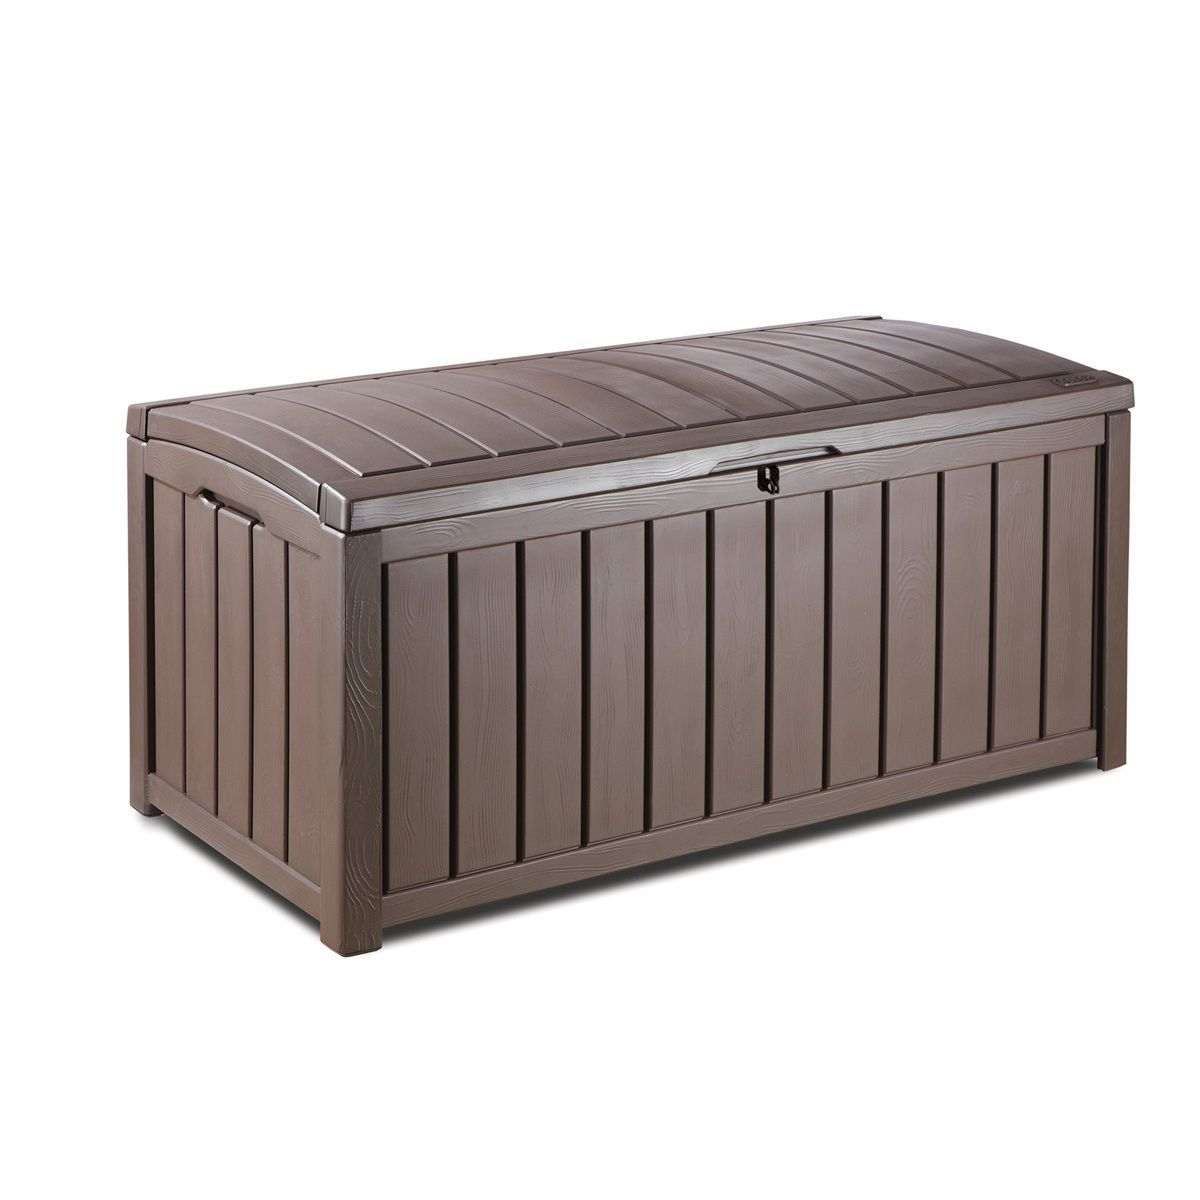 Keter Glenwood 101 Gallon Deck Storage Box, Patio Furniture